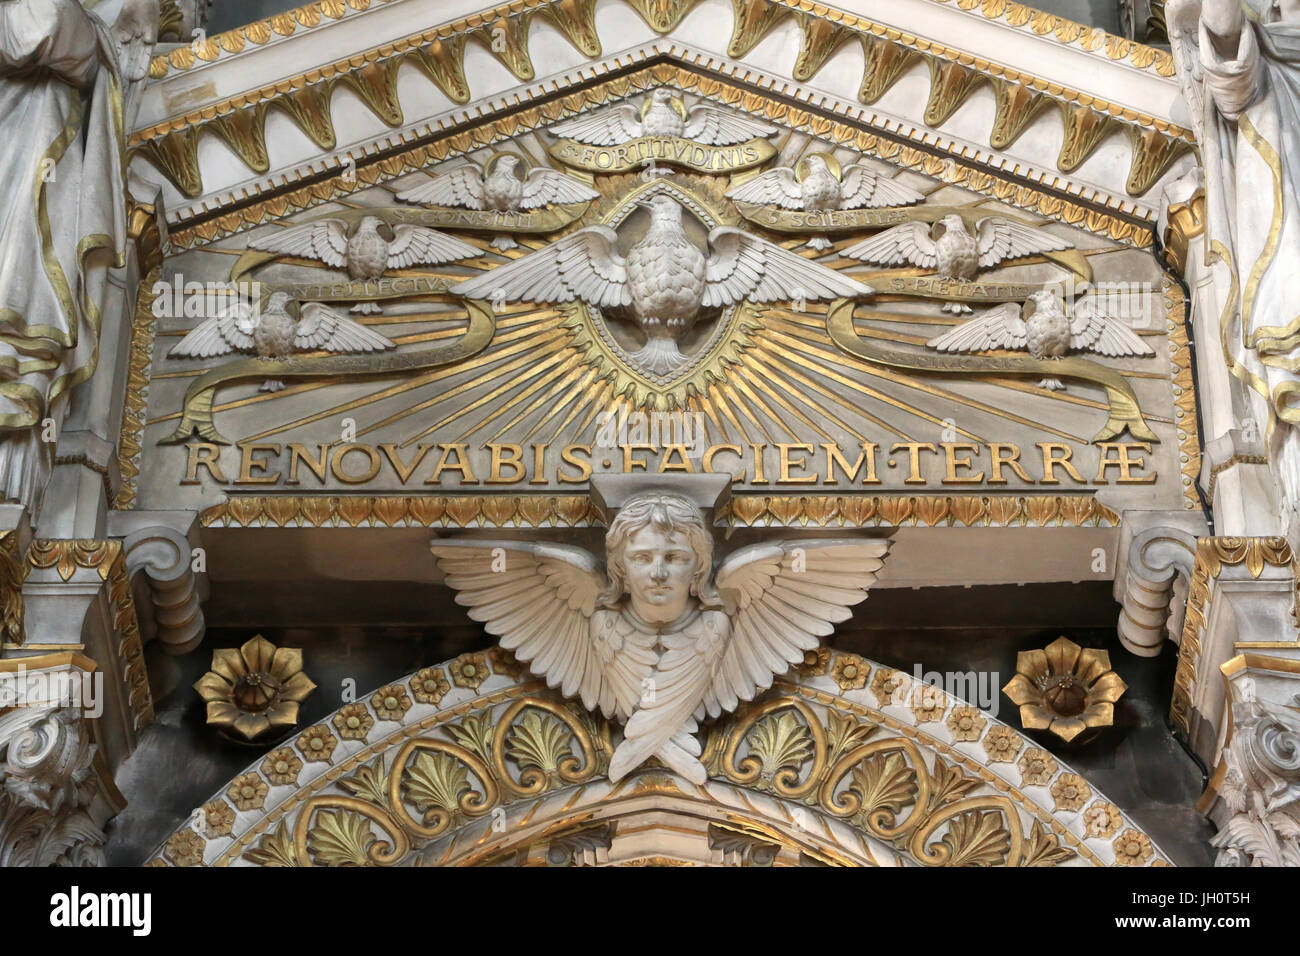 Renovabis faciem terrae - The face of the earth will be renewed. St Matthew.  Basilica of Notre-Dame de Fourvire. - Stock Image